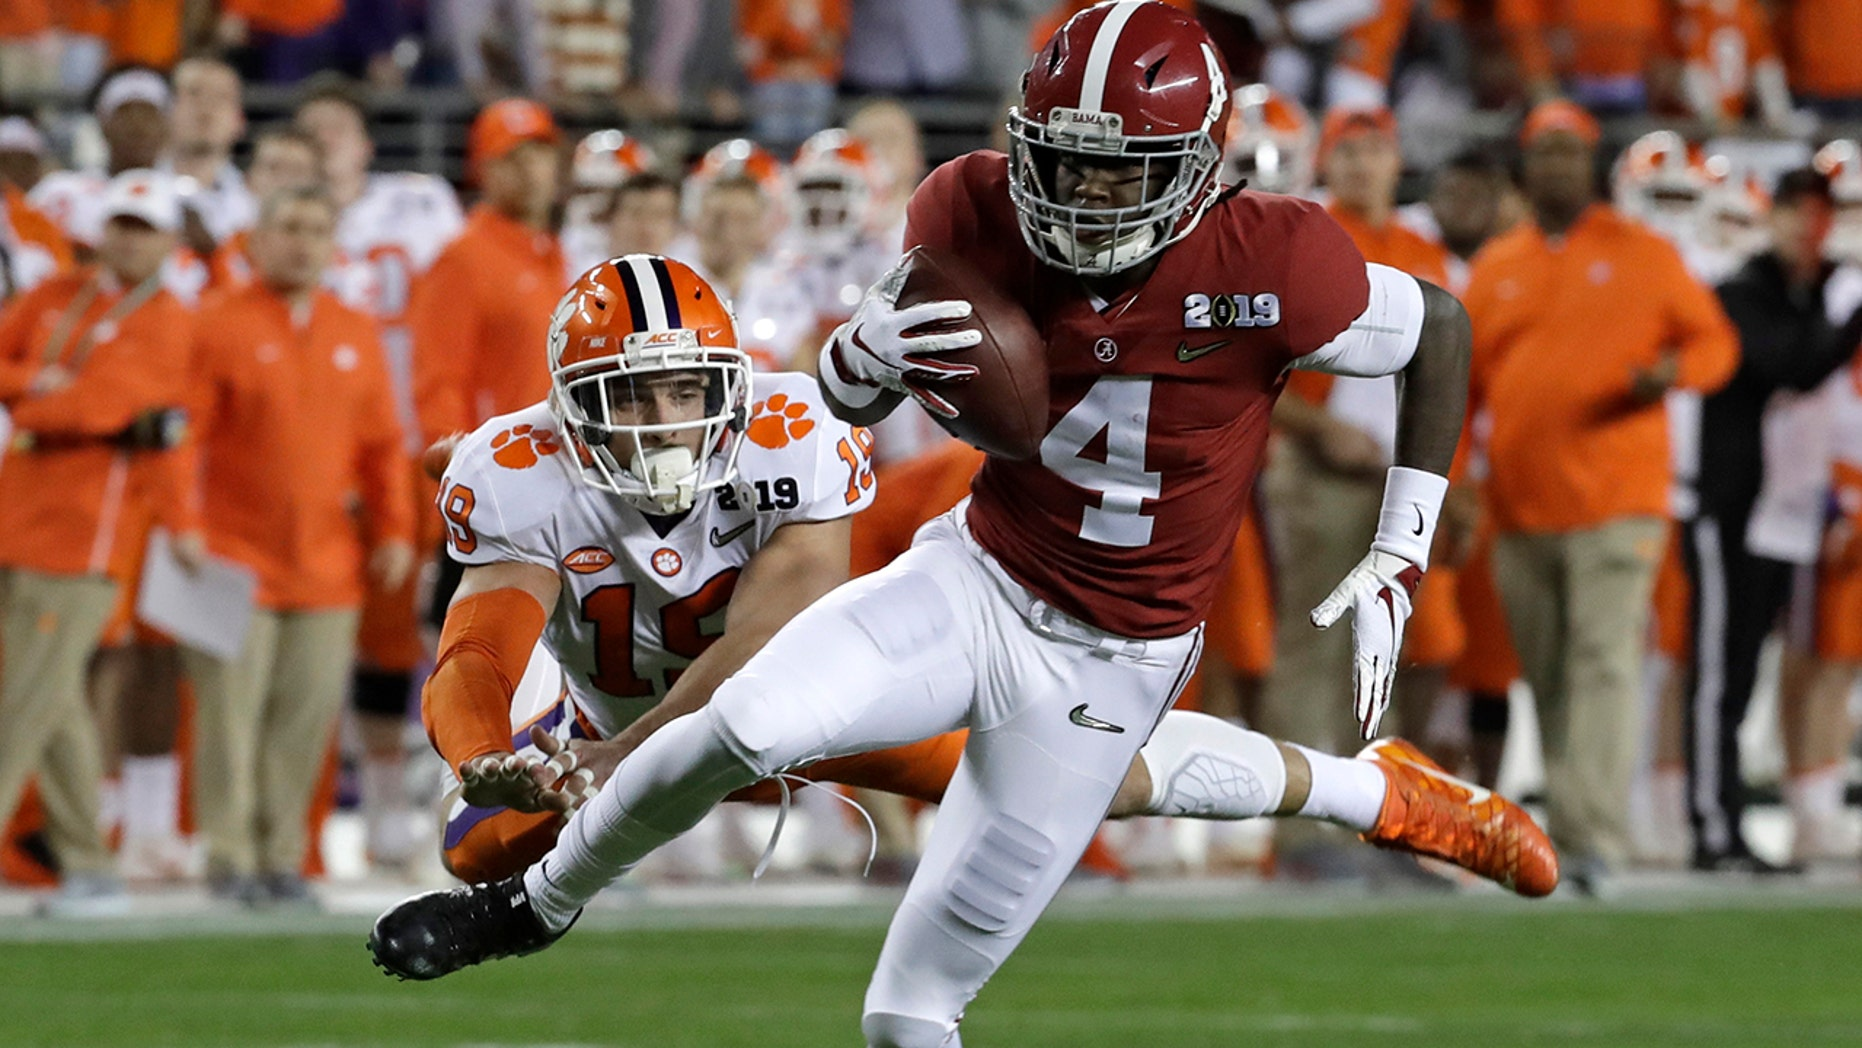 FILE - In this Jan. 7, 2019, file photo, Alabama's Jerry Jeudy catches a touchdown pass in front of Clemson's Tanner Muse during the first half the NCAA college football playoff championship game in Santa Clara, Calif.  (AP Photo/Chris Carlson, File)